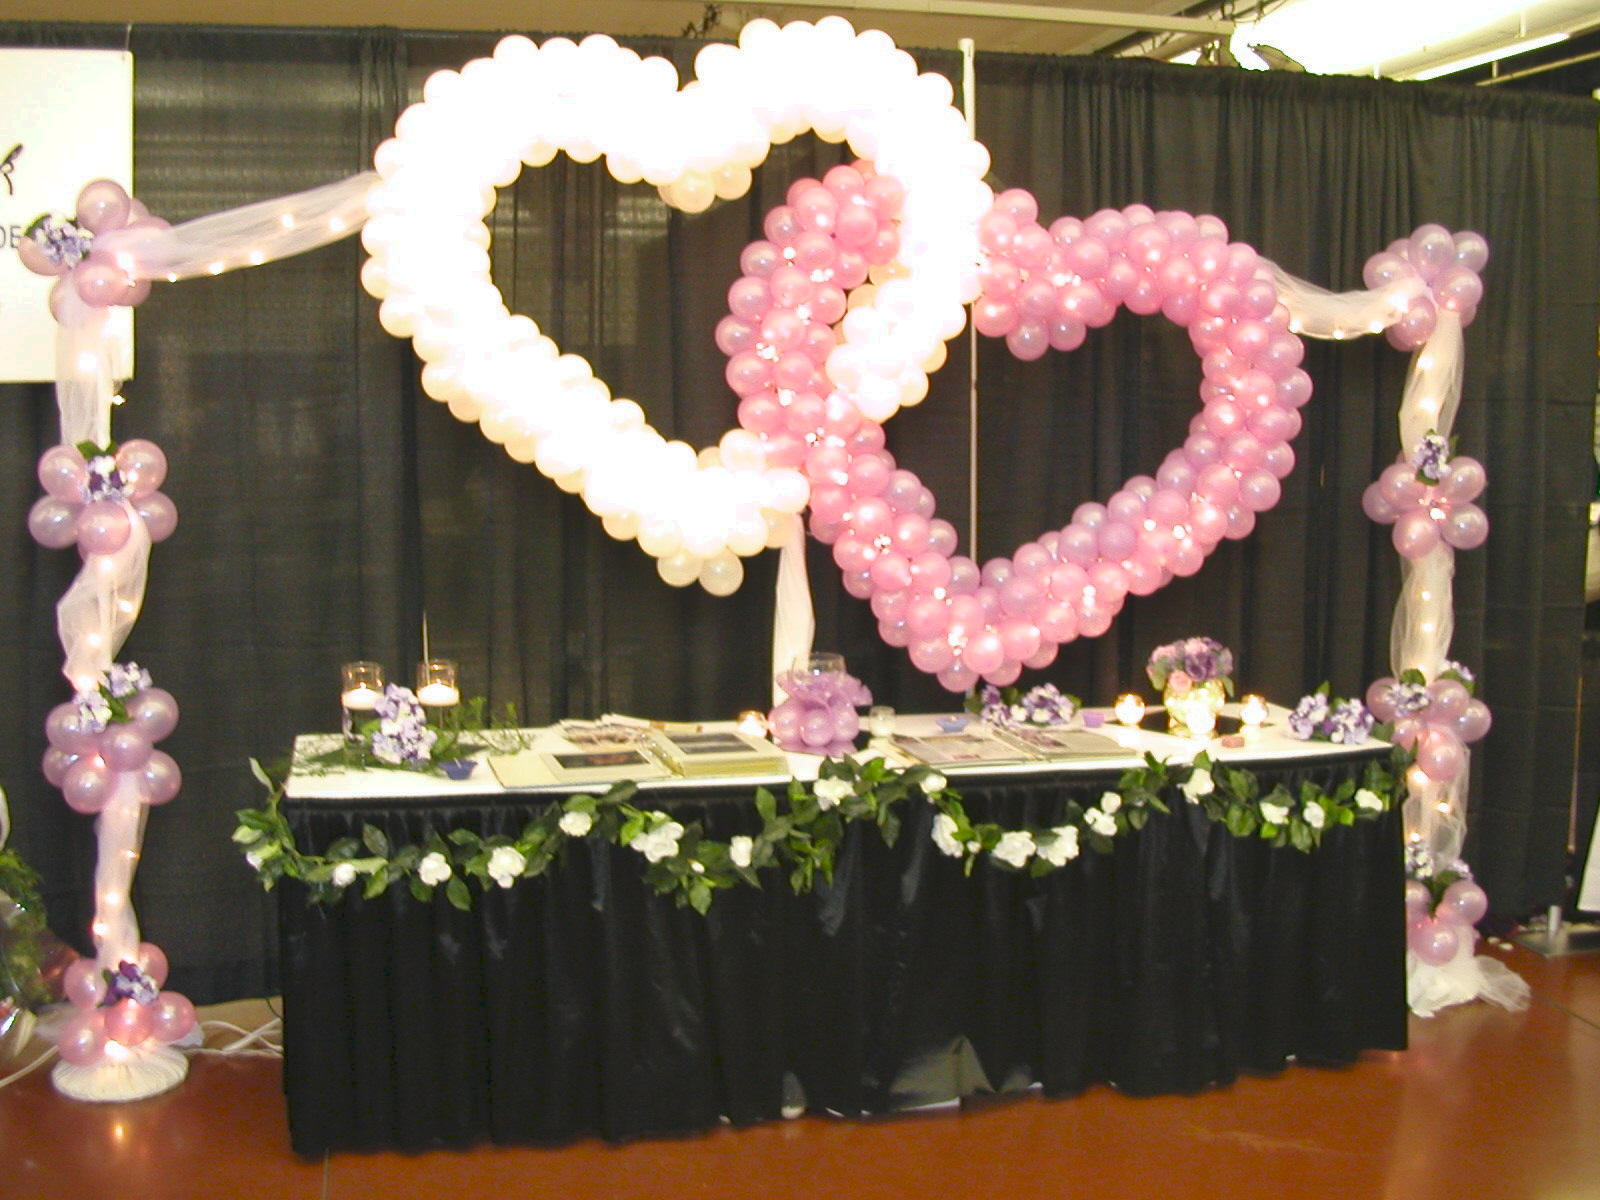 Balloon decor of central california wedding for Balloon decoration ideas for weddings